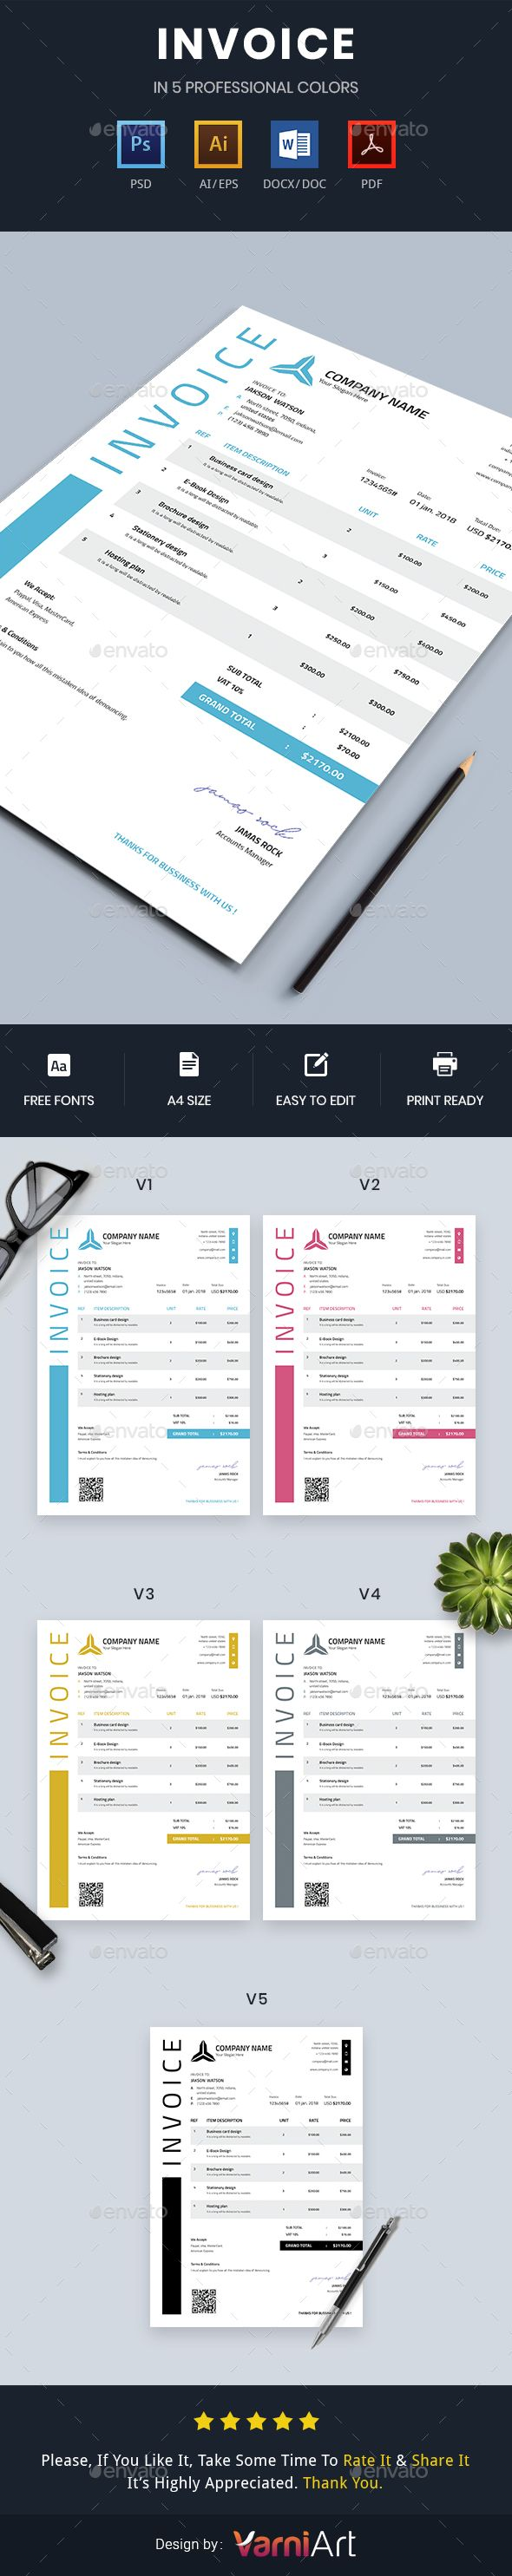 Invoice Template Psd Vector Eps Ai Docx Proposal Invoice